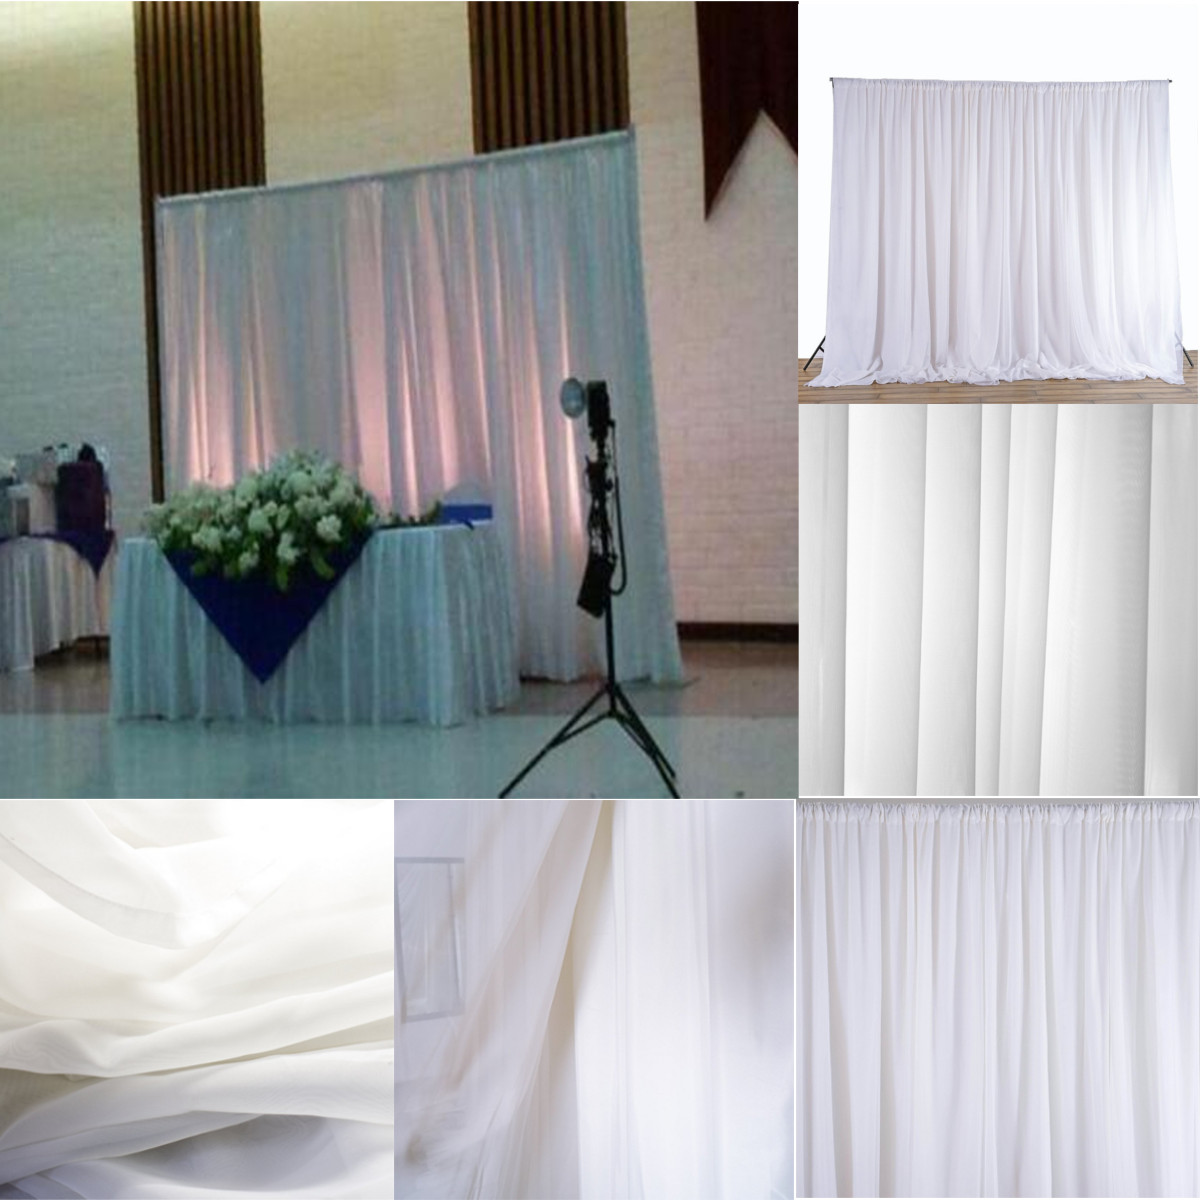 Draping Curtains Hot Sale 7 9ftx4 9ft White Wedding Party Backdrop Curtain Drapes Background Decor Studio Draping